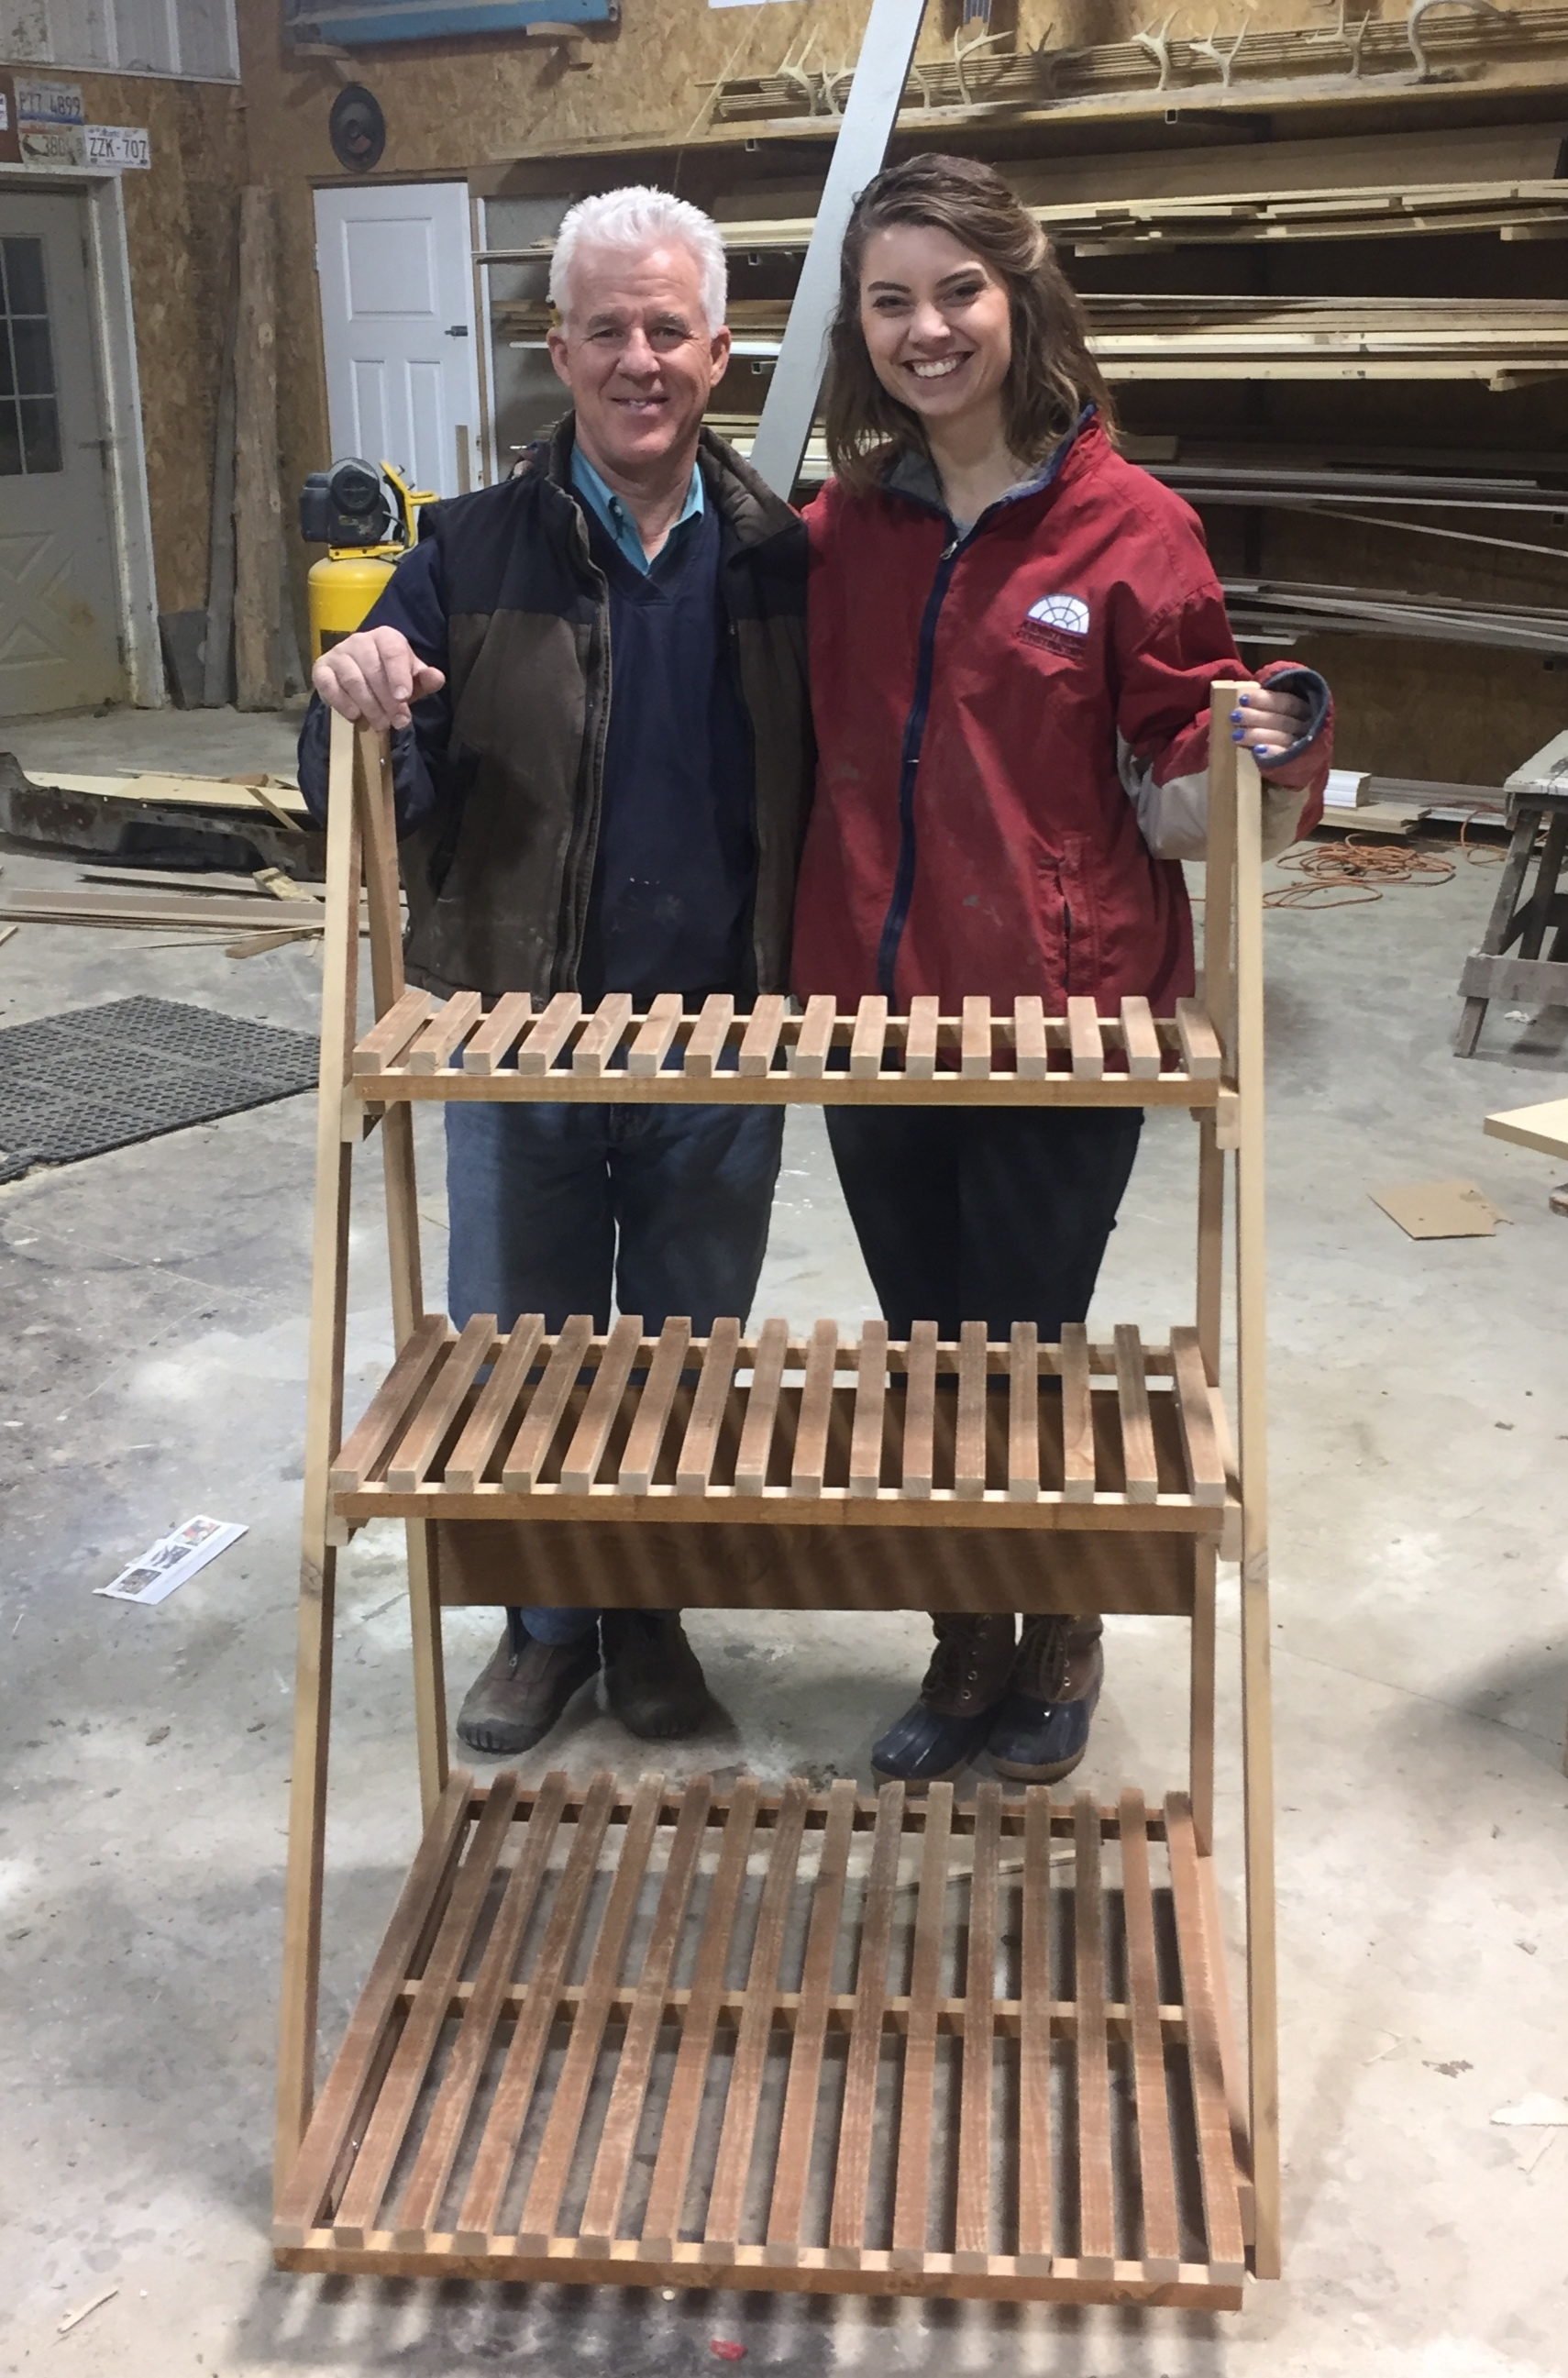 Carpentry Project - This past weekend we took a trip out to Illinois to connect with family and ministry partners. While there Karilyn and Blair's Dad spent an enjoyable 2 hours, from start to finish, making a flower pot stand! These two LOVE to garden!